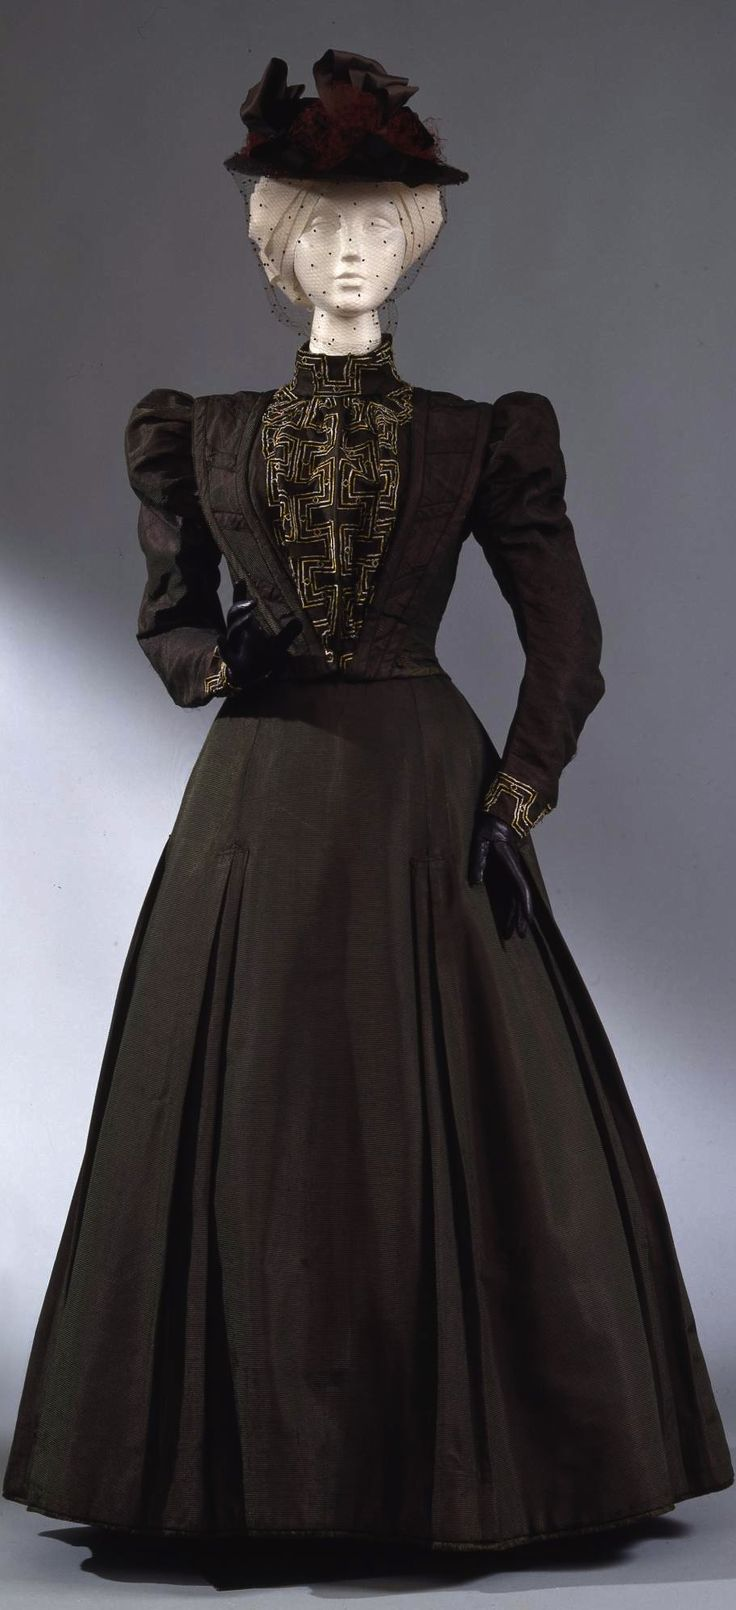 Walking Dress In Two Parts (bodice And Skirt), Italian